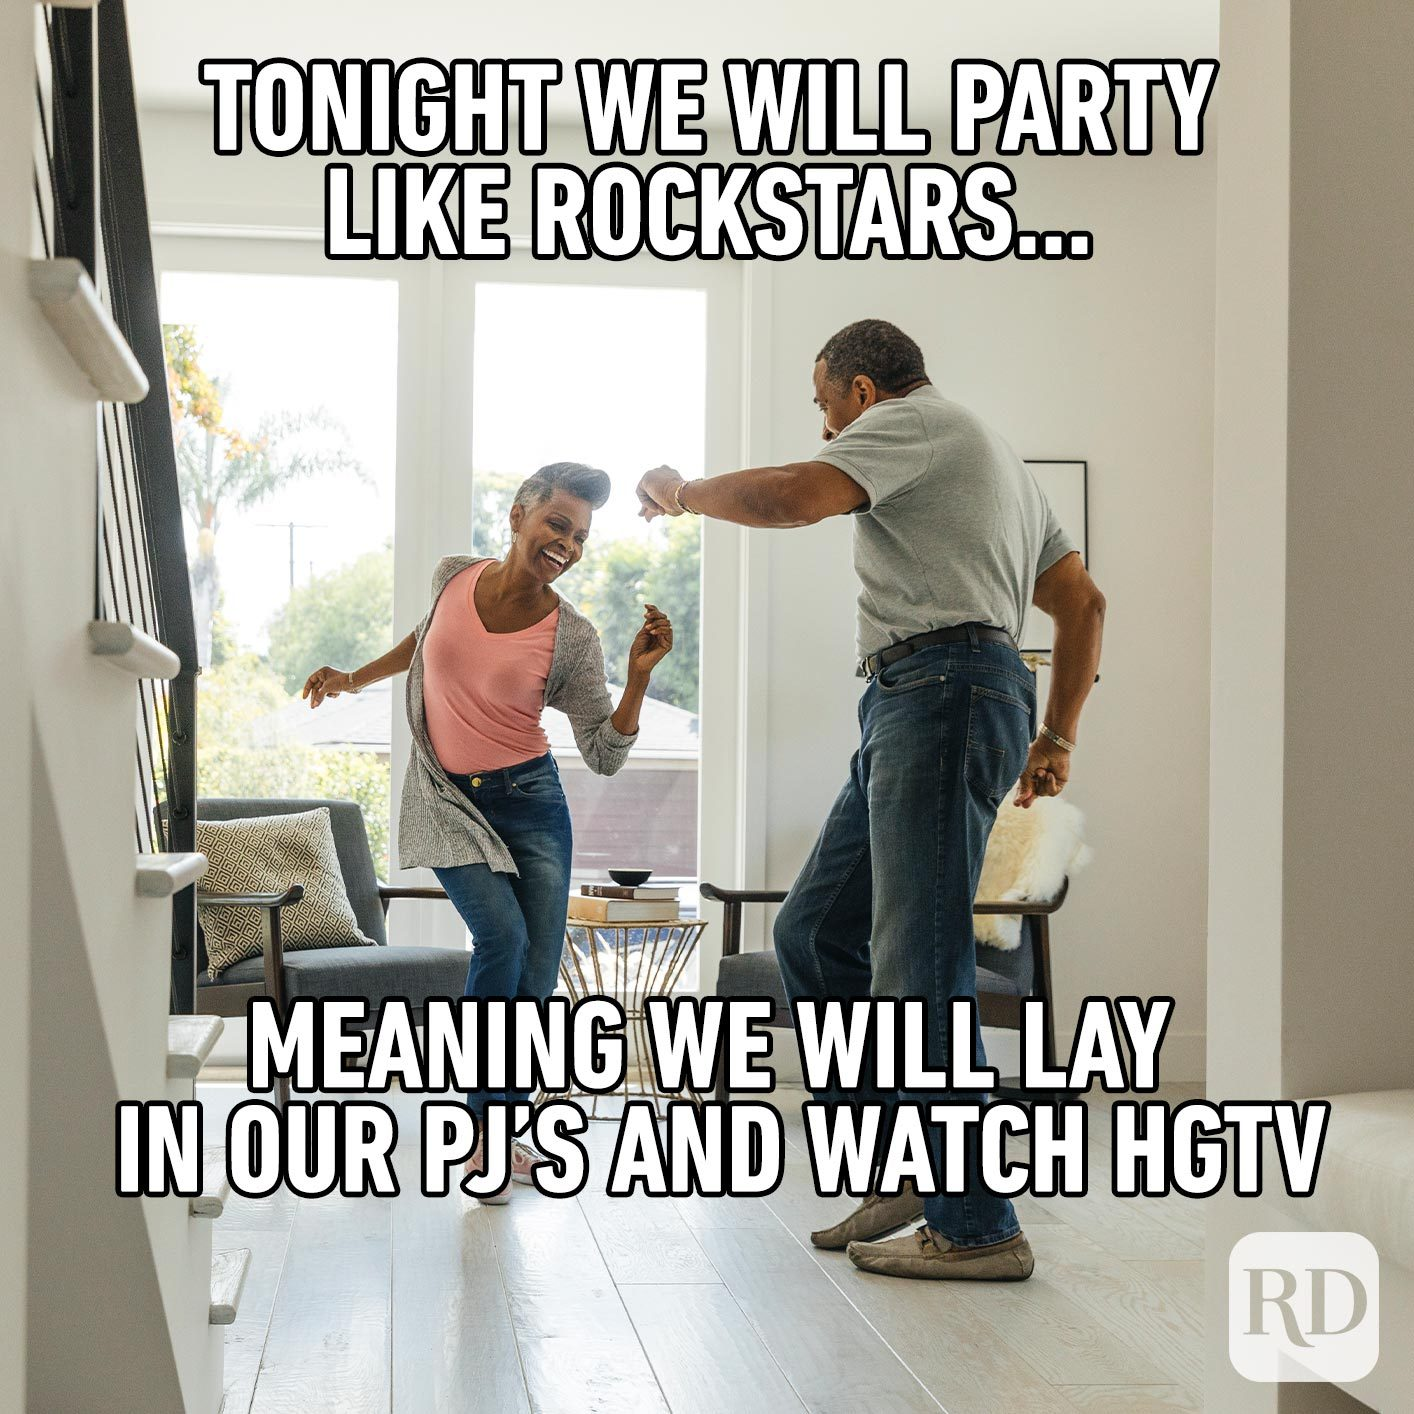 Couple dancing in the hallway. Meme text: Tonight we will party like rockstars… meaning we will lay in our PJ's and watch HGTV